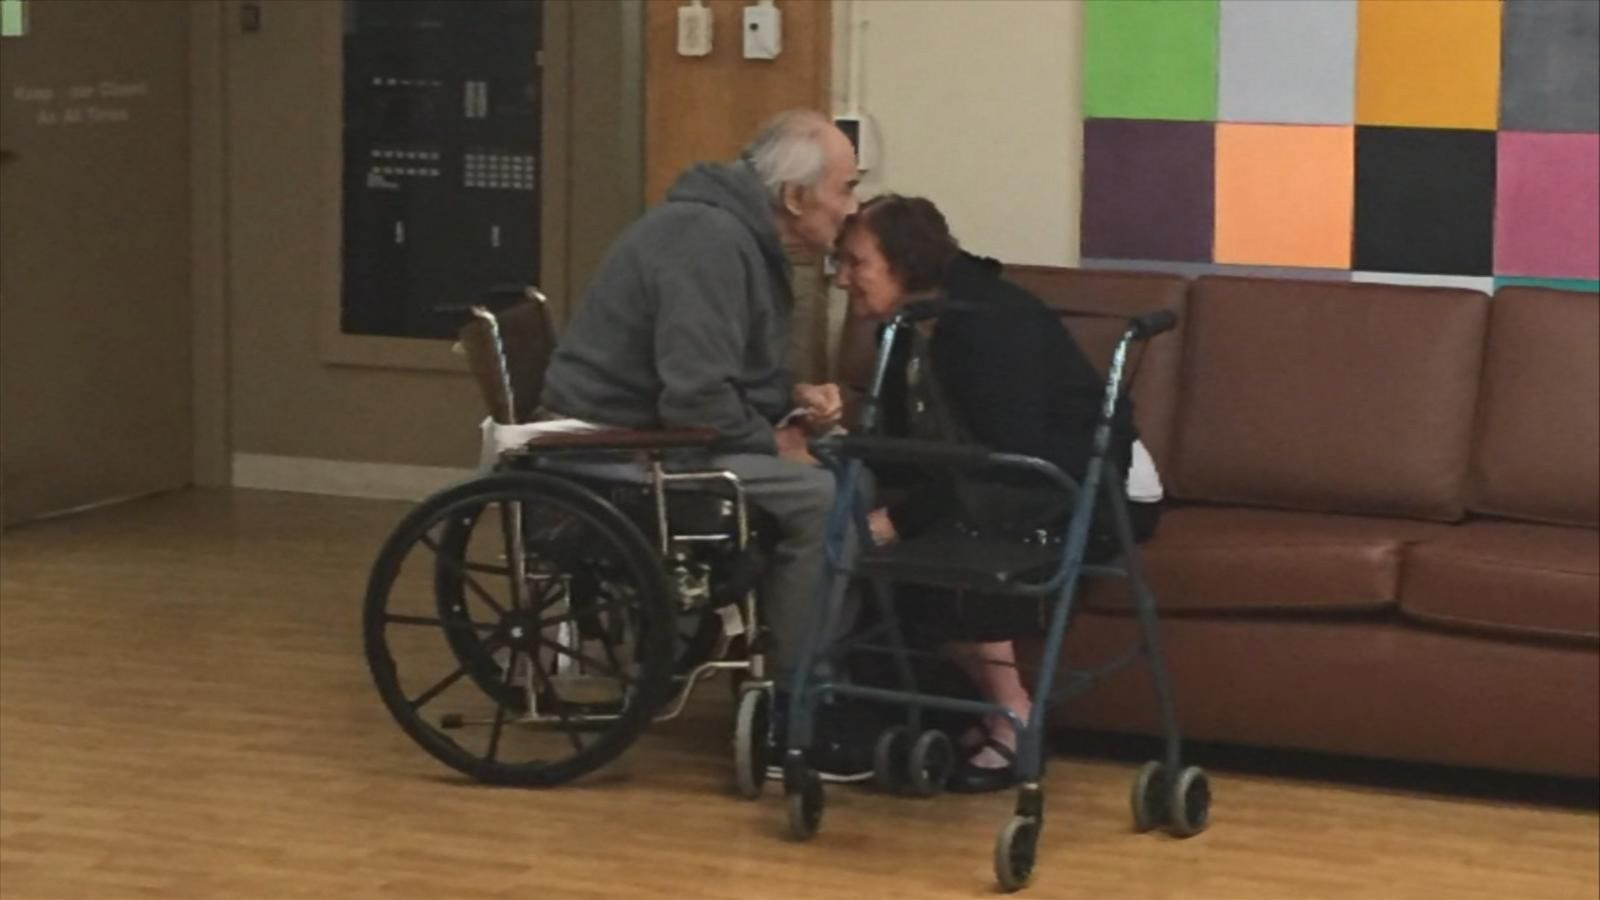 The couple has been living apart for months in separate nursing homes.